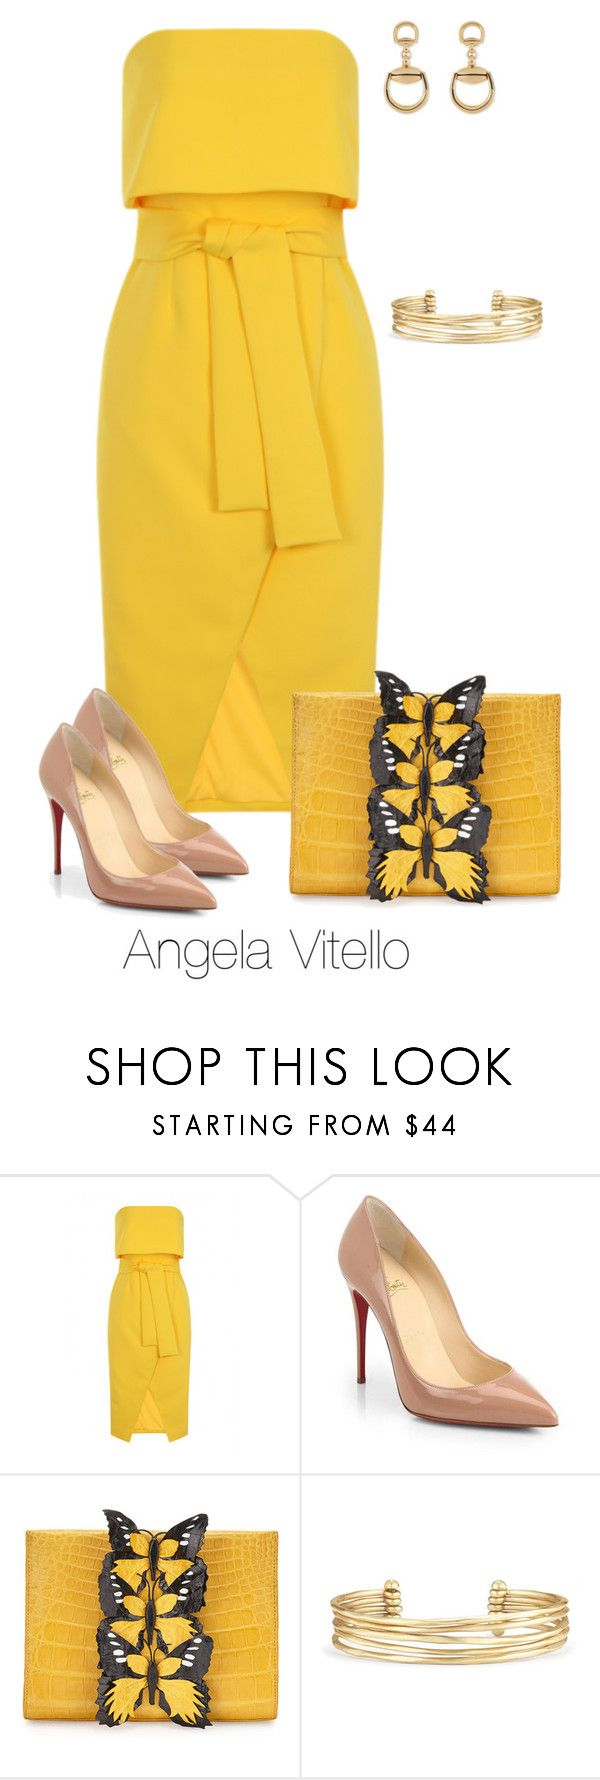 """Untitled #734"" by angela-vitello on Polyvore featuring Lavish Alice, Christian Louboutin, Nancy Gonzalez, Stella & Dot and Gucci"